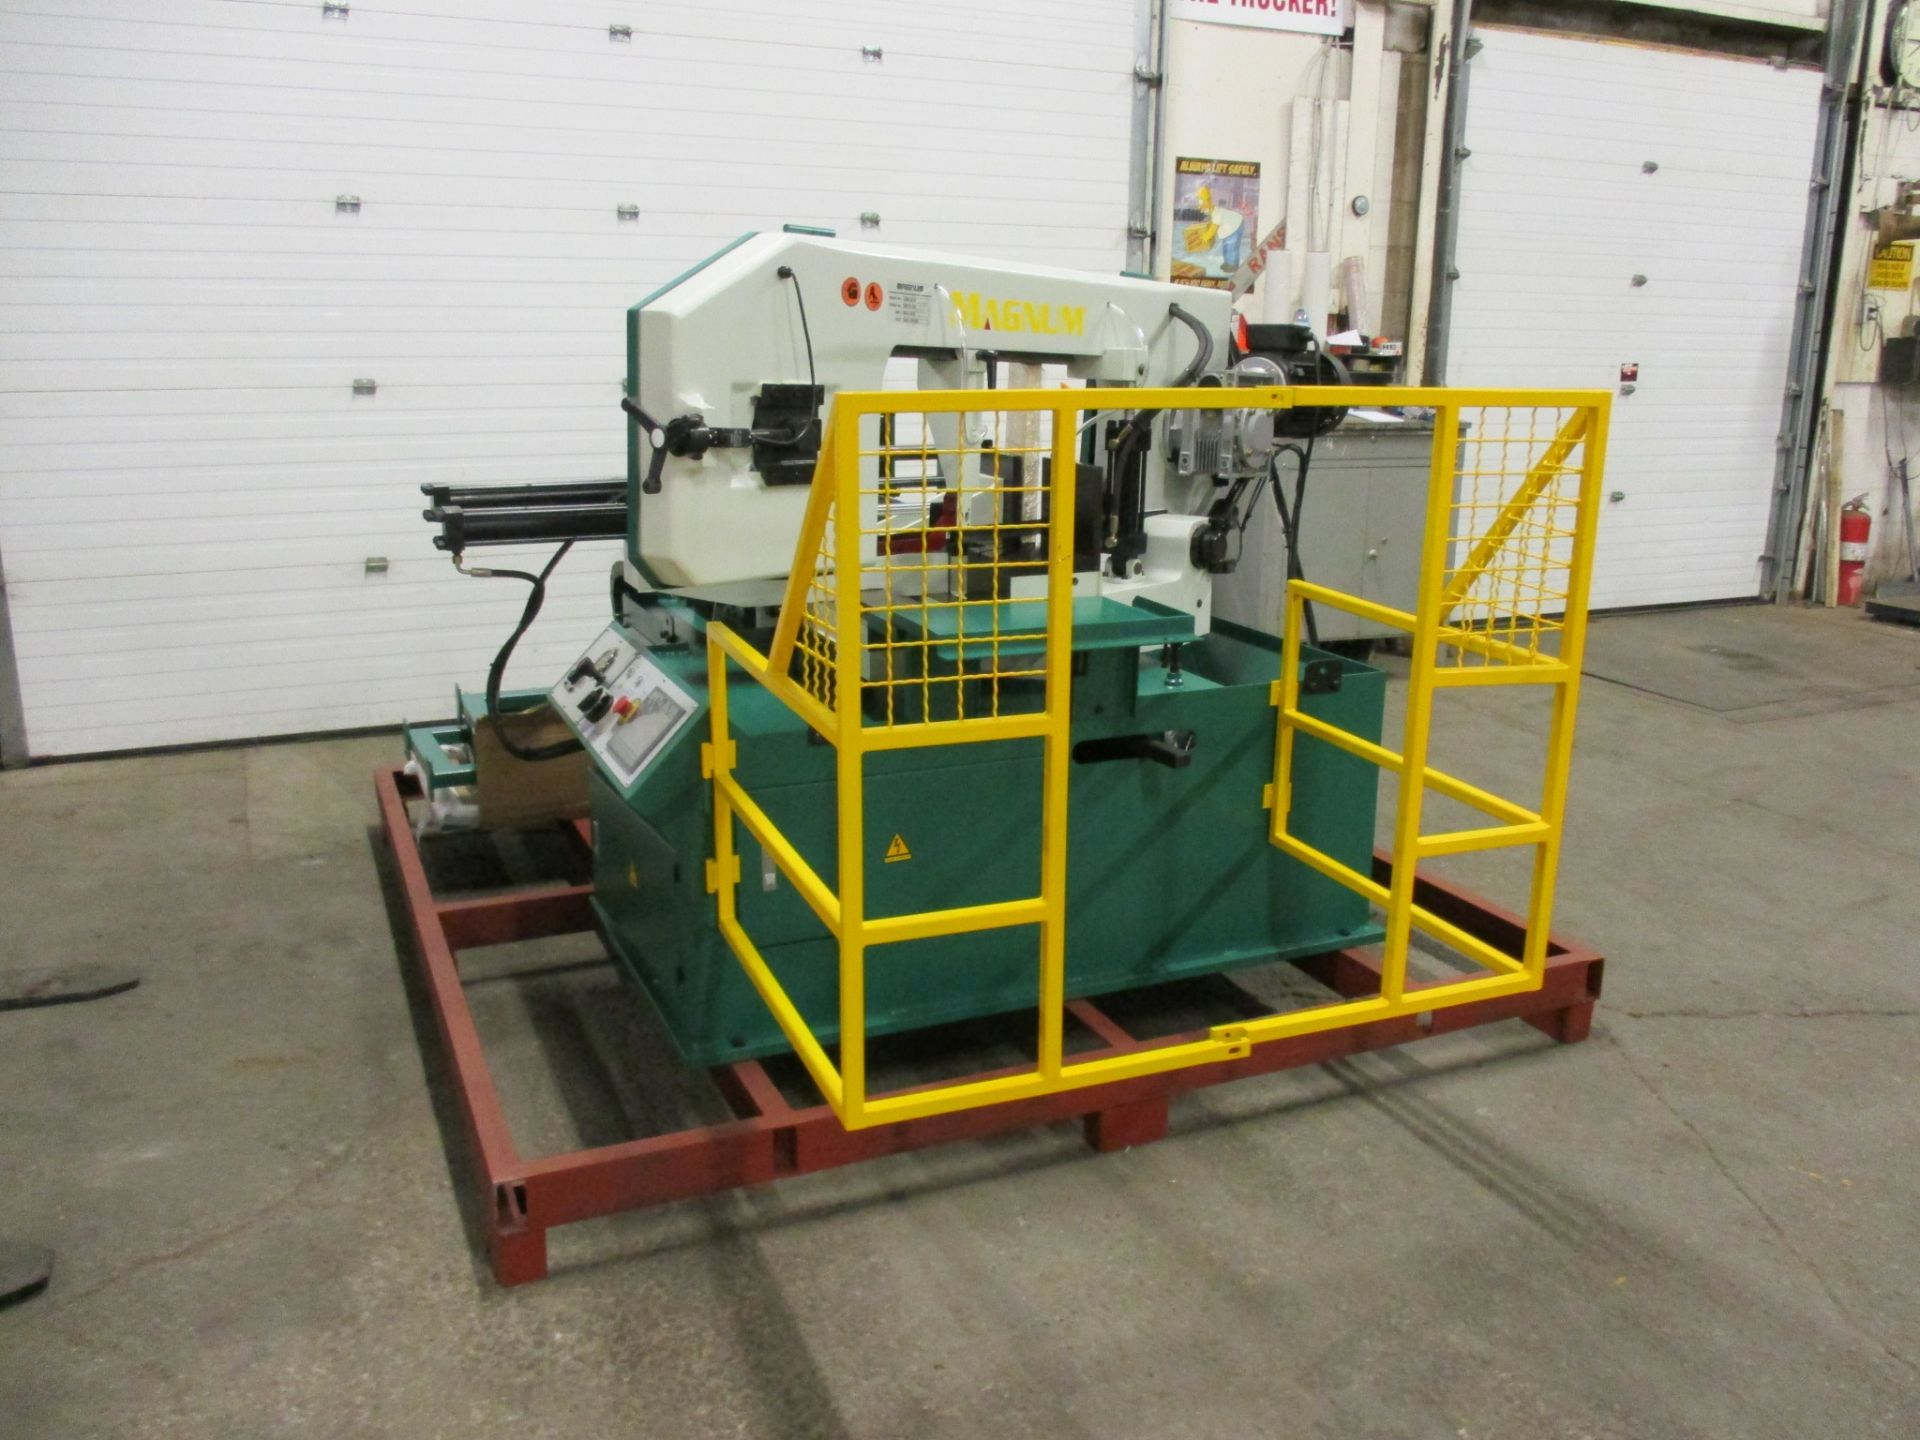 Lot 254 - Magnum BSM-1813A Fully Automatic CNC Horizontal Band Saw - 18 X 13 inch CUTTING CAPACITY - CNC